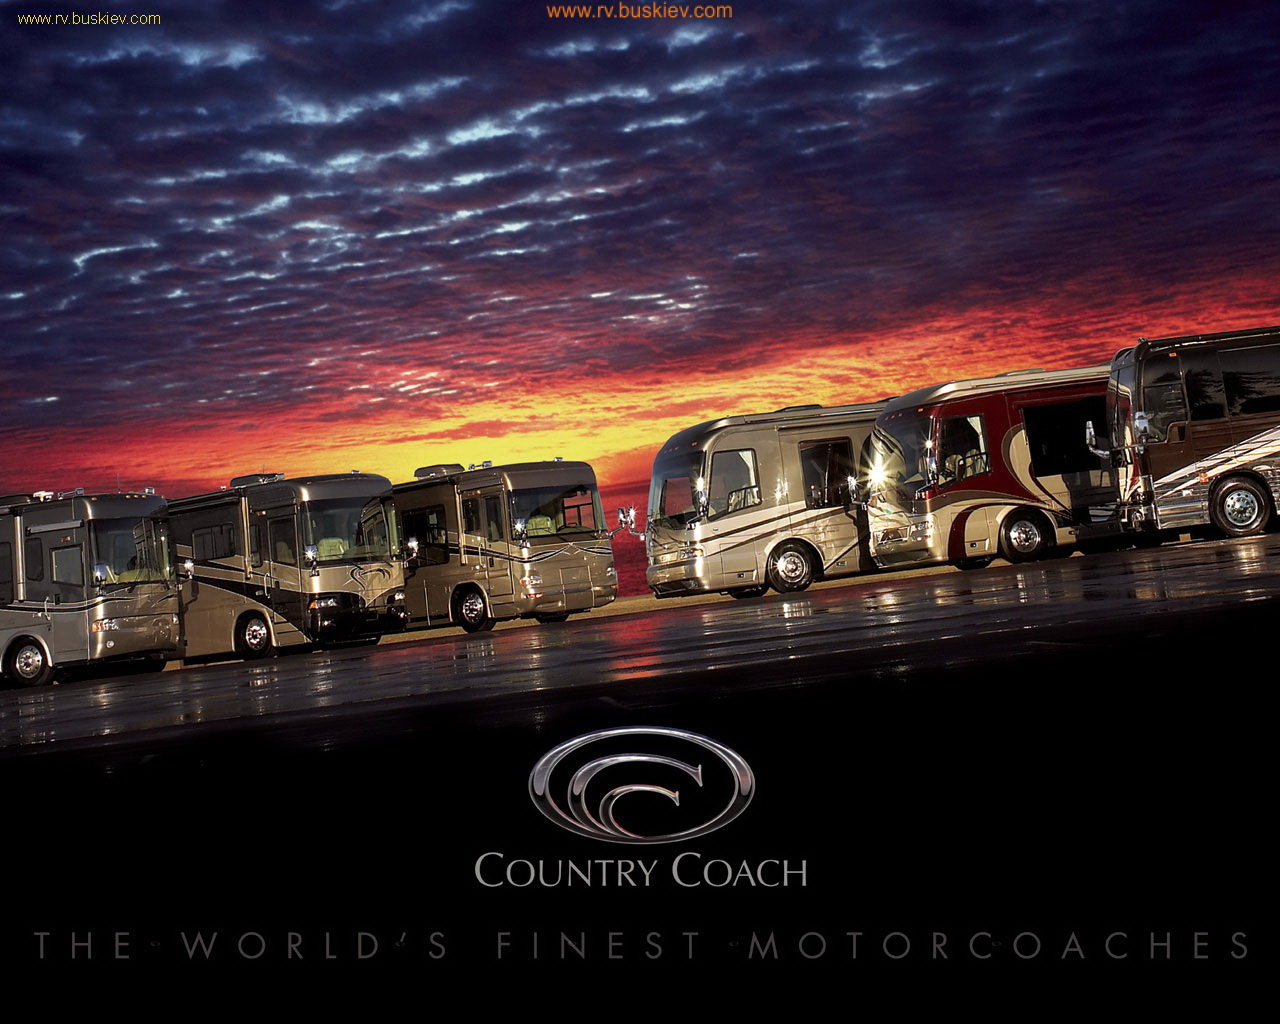 2007_country_coach_0001